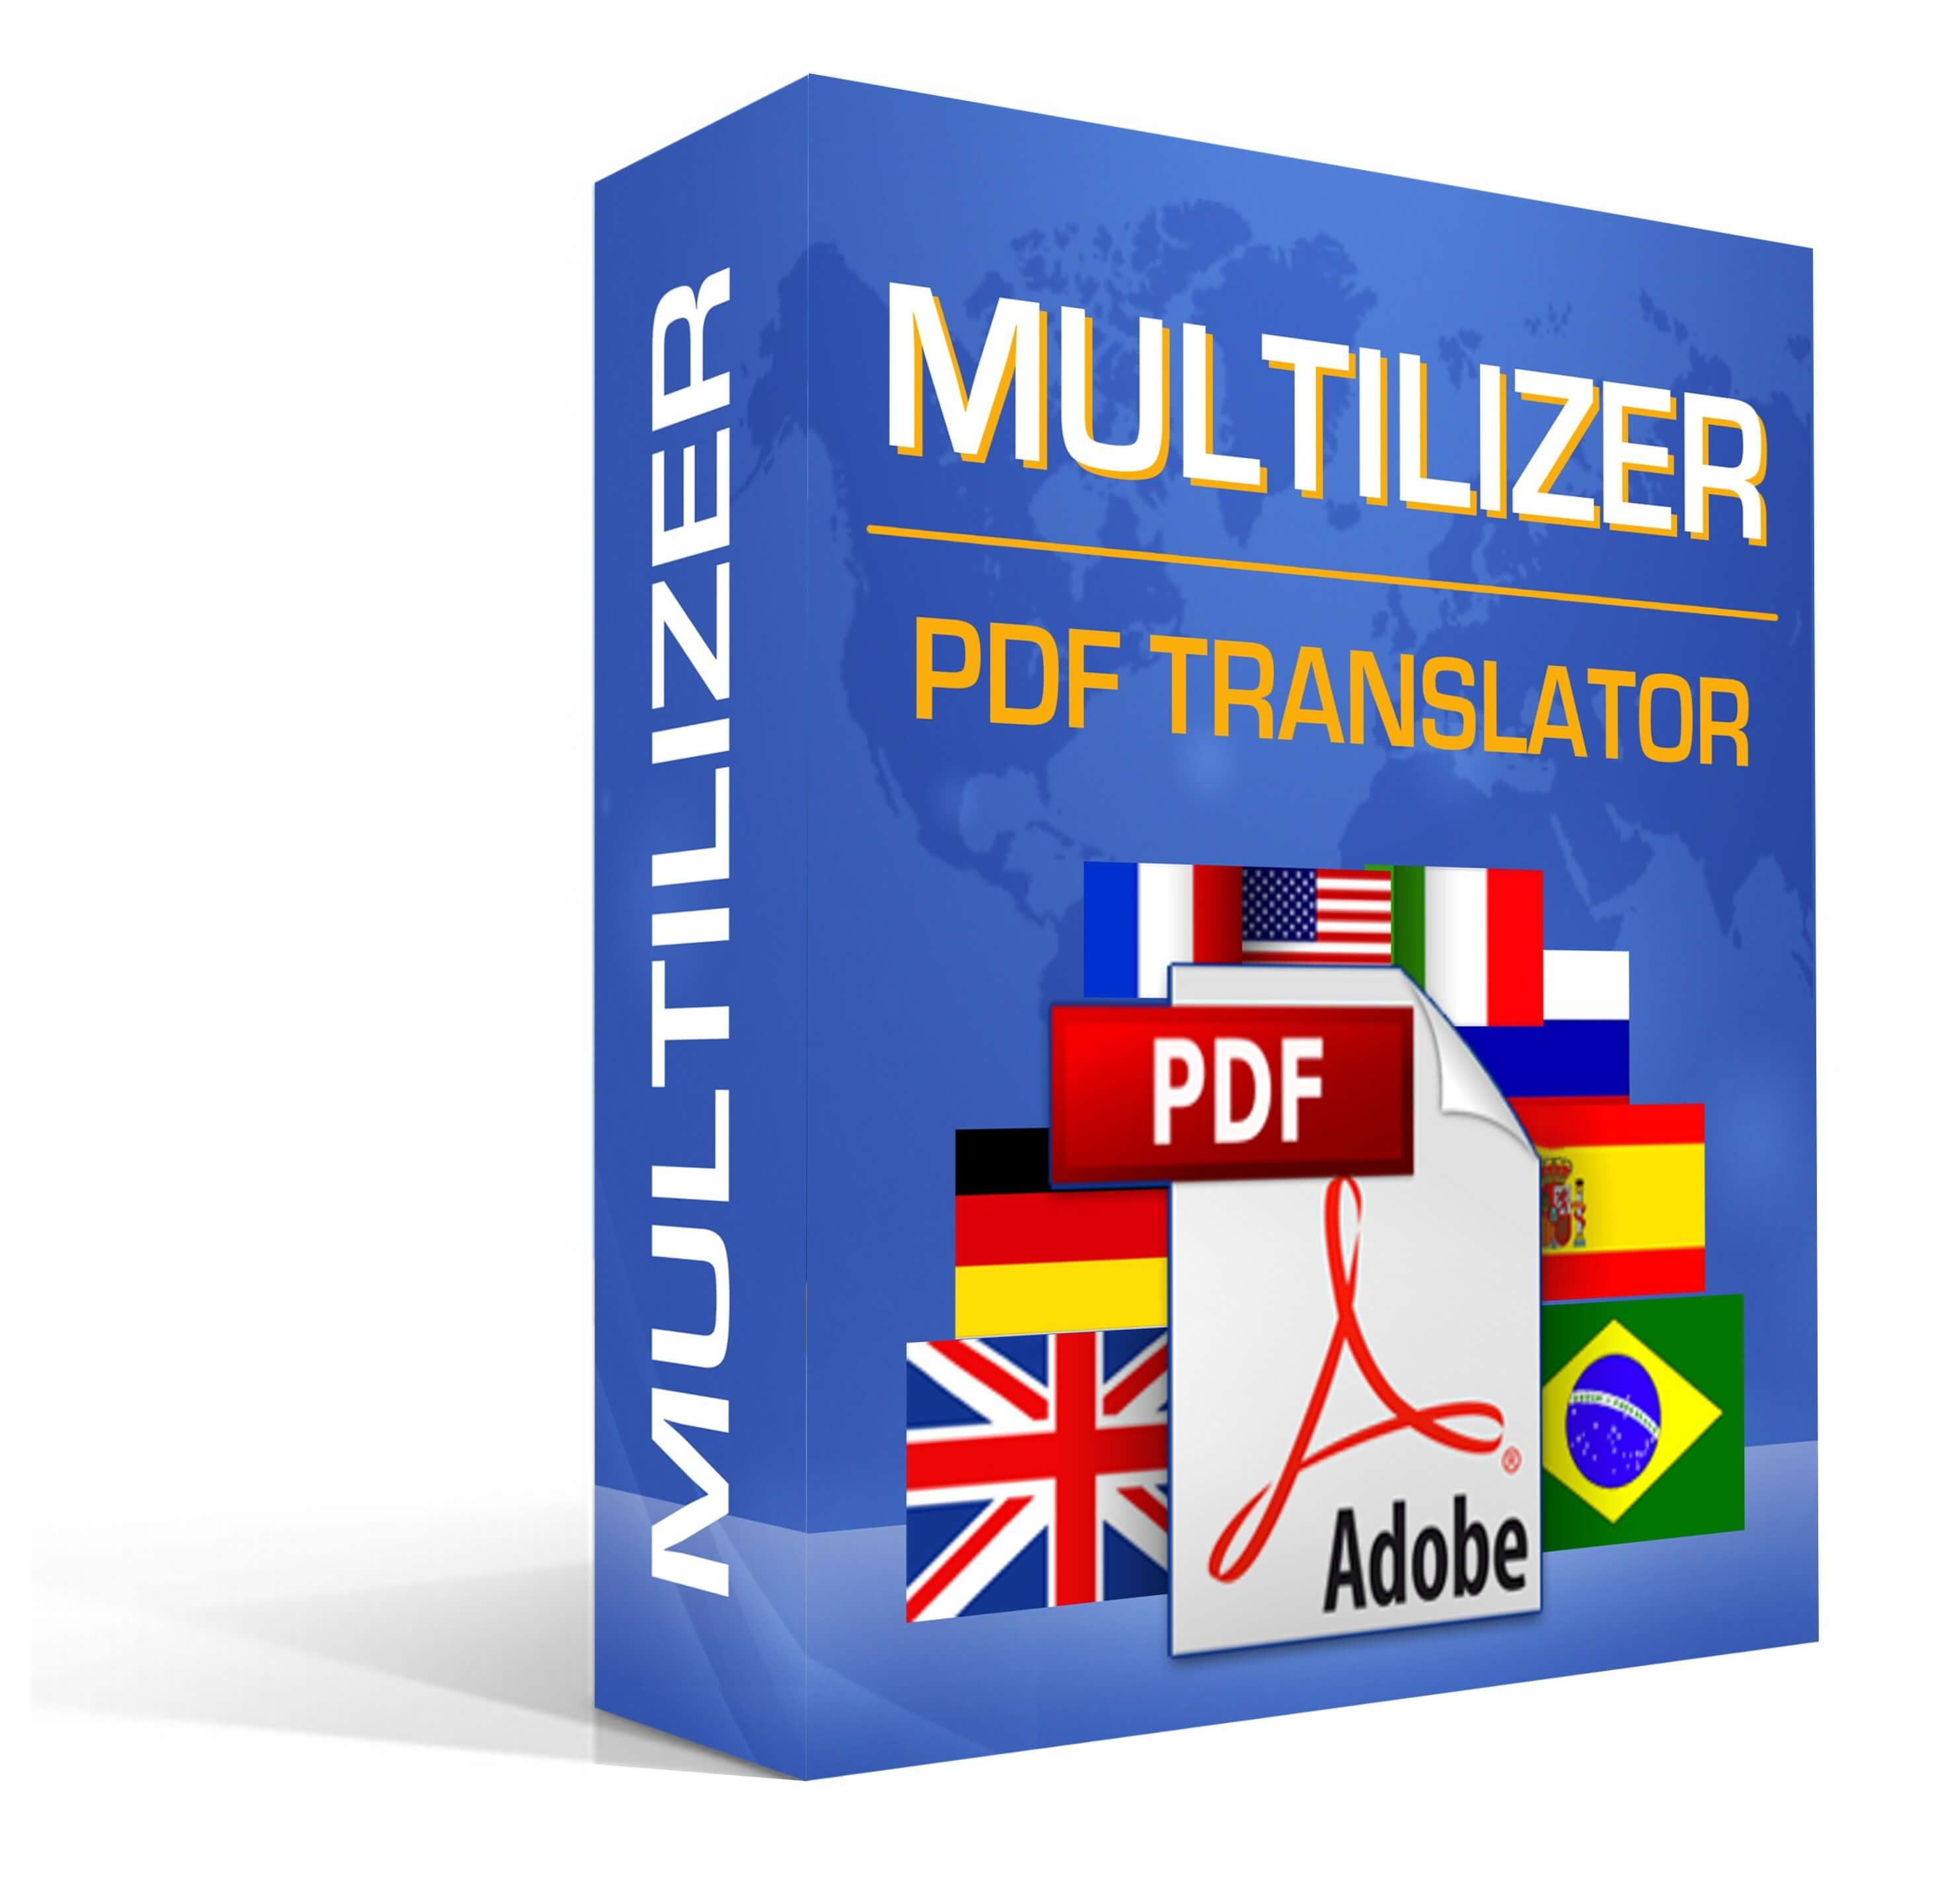 Multilizer PDF Translator promo code